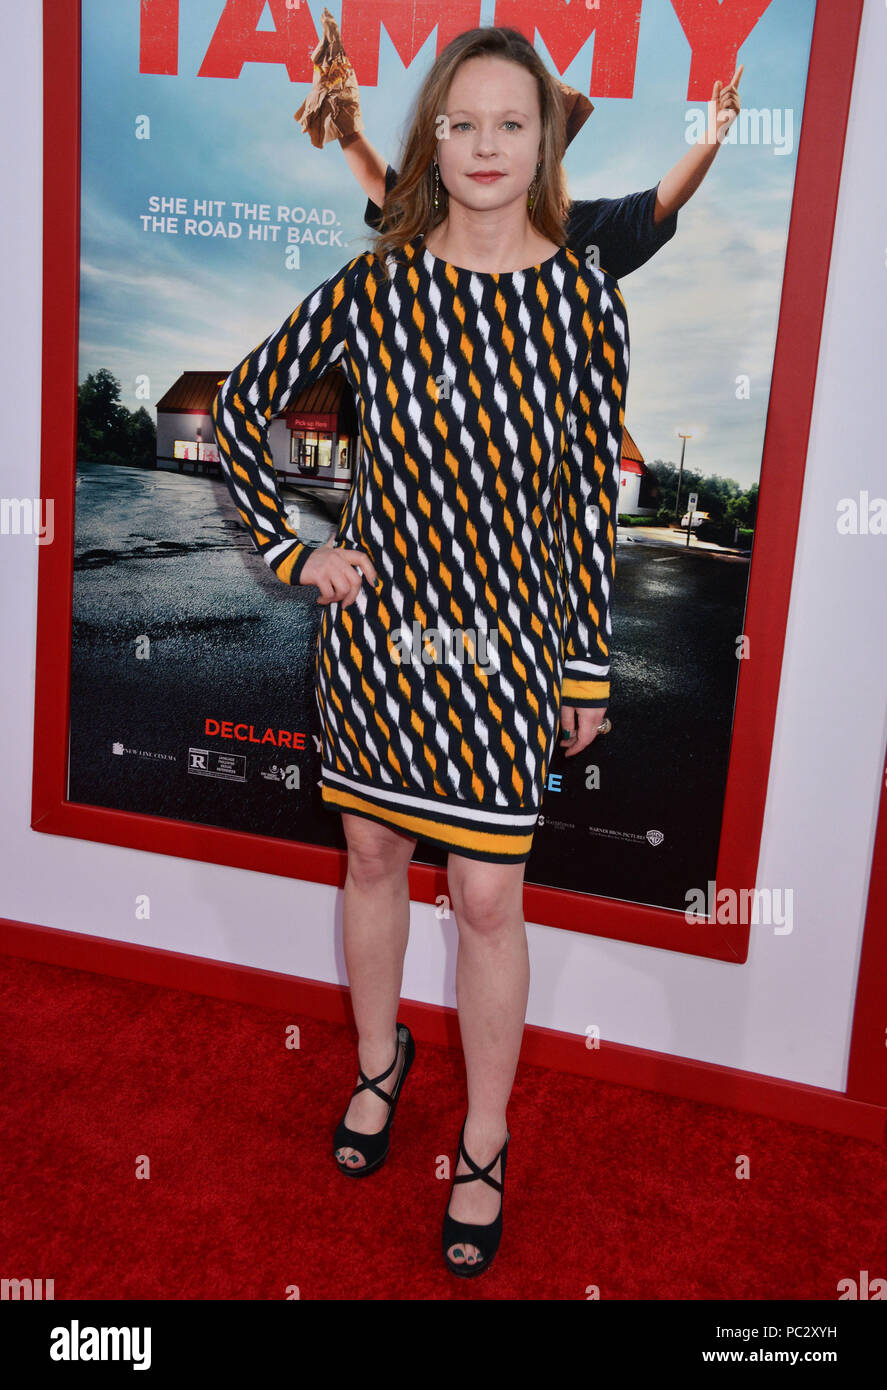 Thora Birch 138 At The Tammy Premiere At The Chinese Theatre